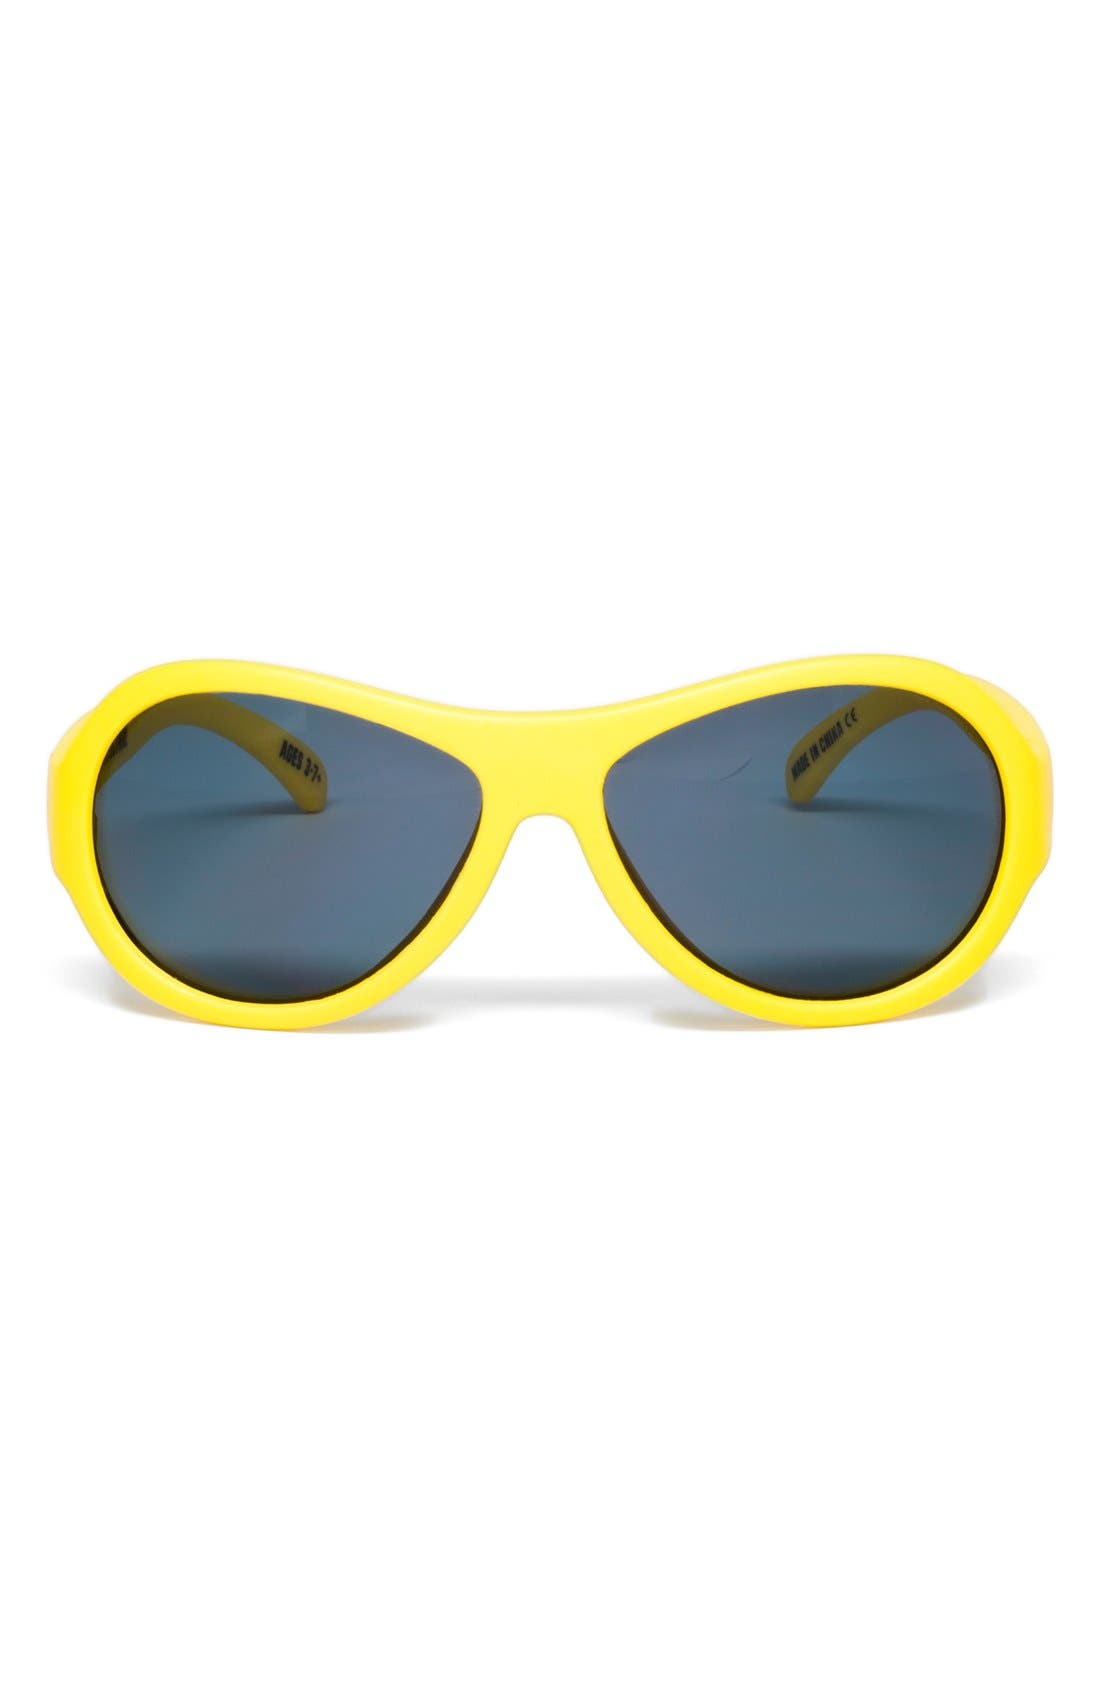 Alternate Image 1 Selected - Babiators 'Junior Babiators' Sunglasses (Baby & Toddler)